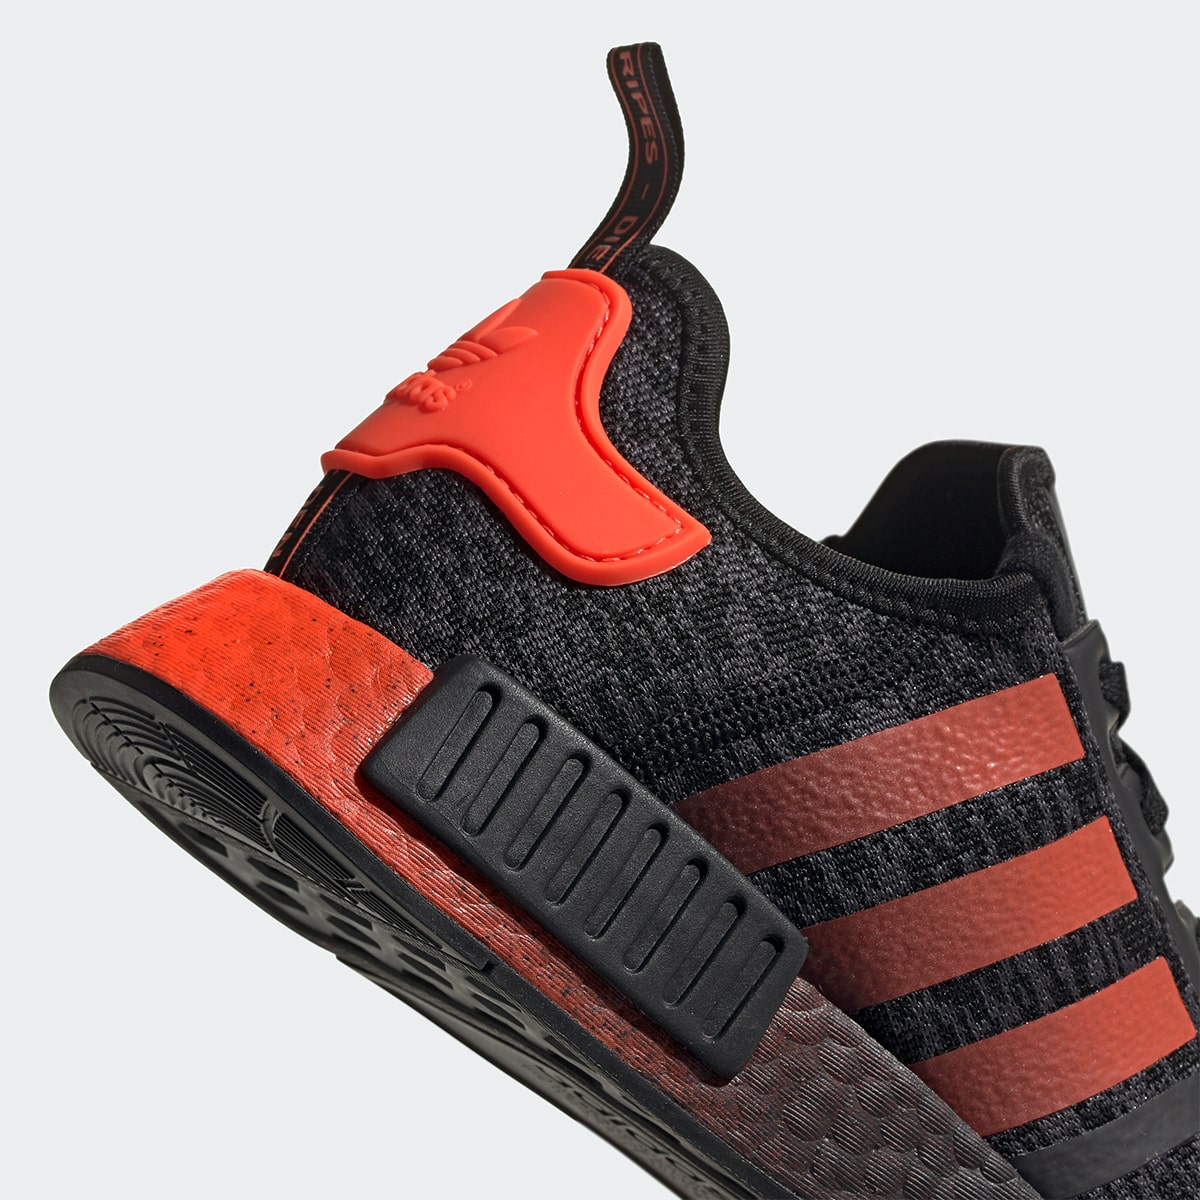 Adidas Nmd R1 Core Black Solar Red 52 49 Free Shipping